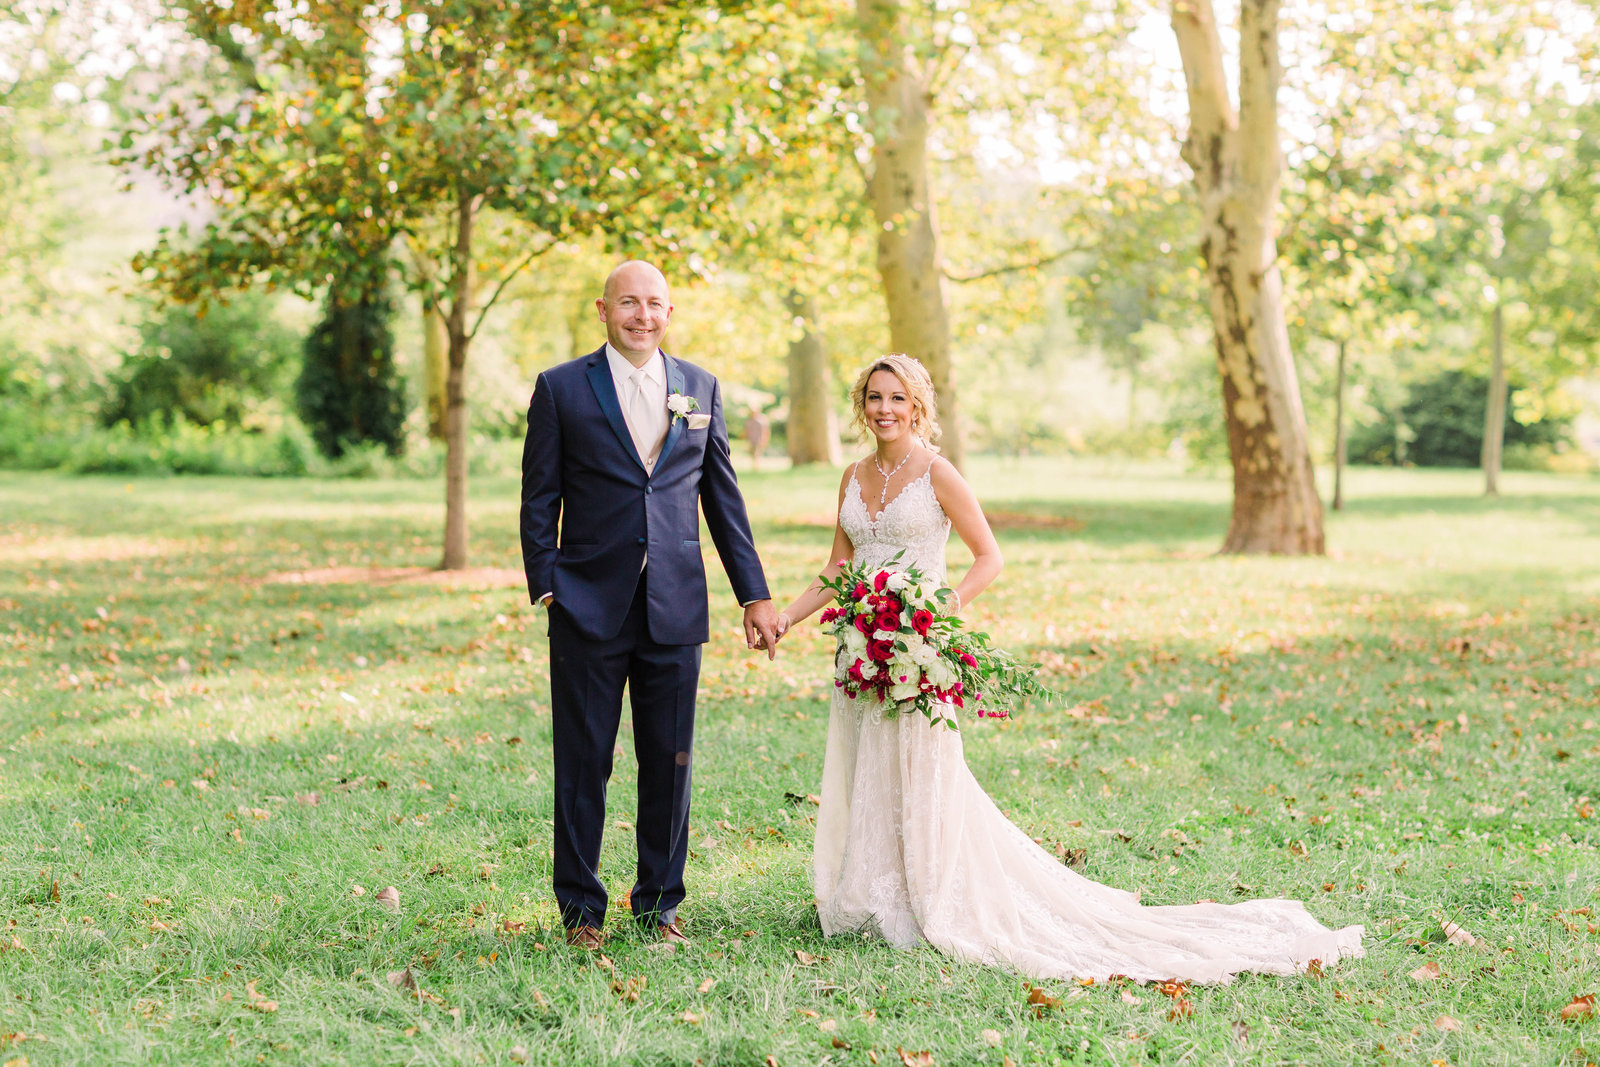 Bride and groom, Jenn and Danny, pose side by side in a lush green field near the Grand Basin in Forest Park